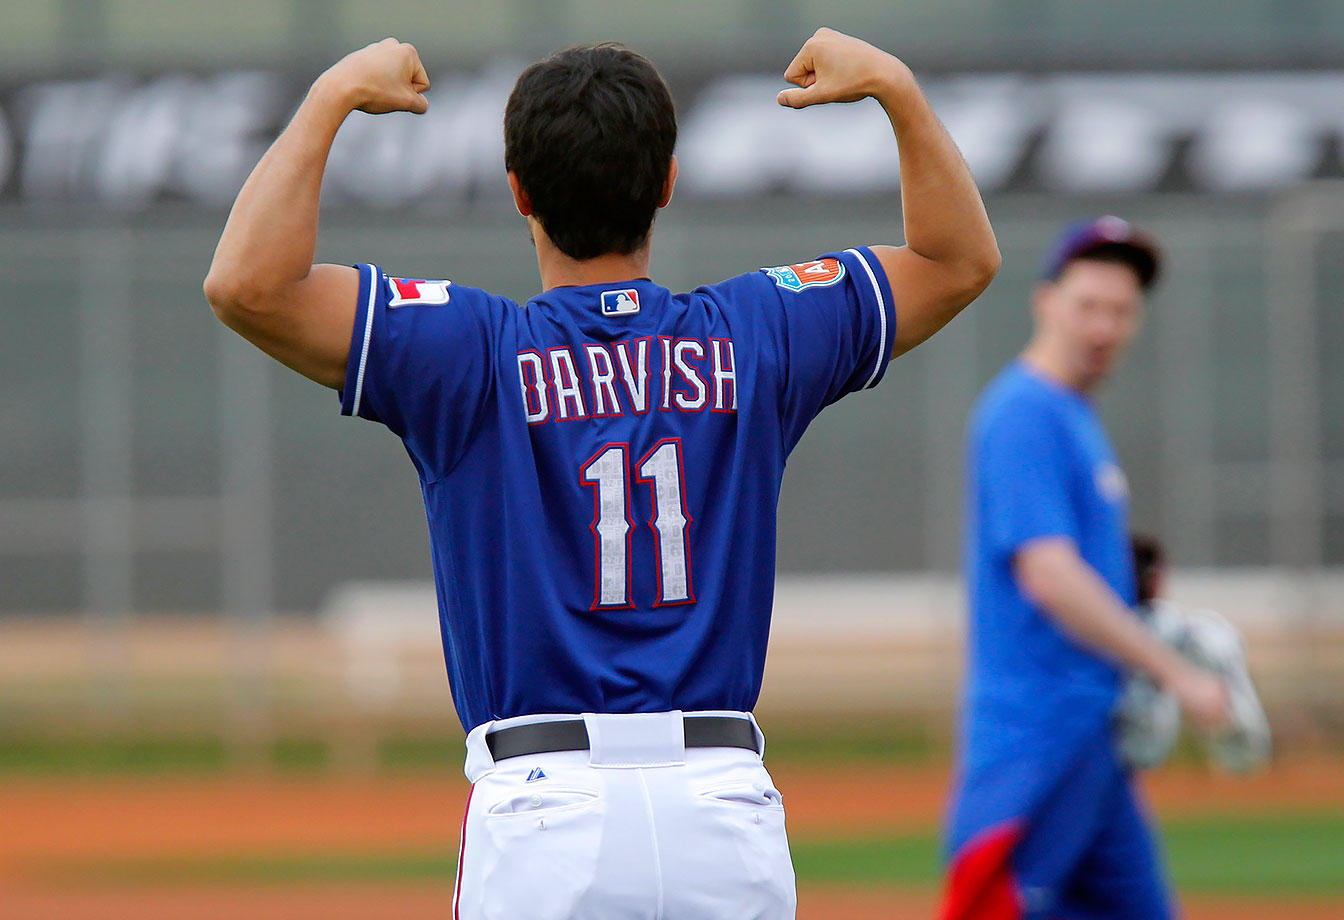 Texas Rangers pitcher Yu Darvish jokes with a teammate as the team begins spring training in Surprise, Ariz.